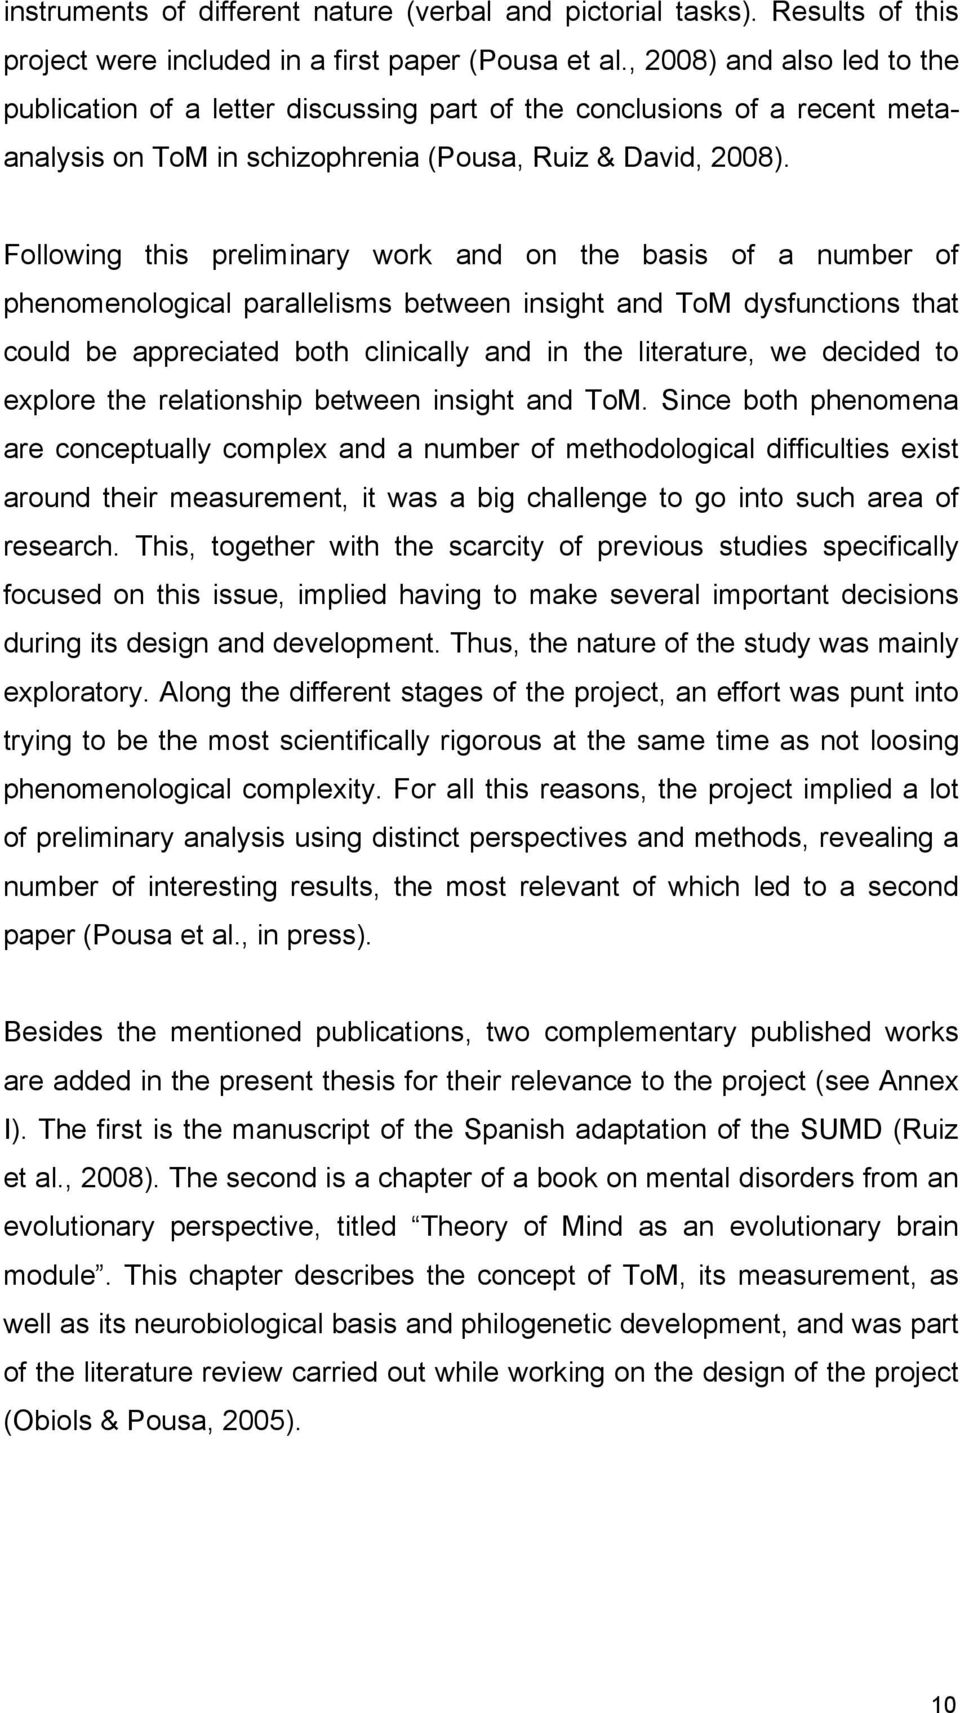 Following this preliminary work and on the basis of a number of phenomenological parallelisms between insight and ToM dysfunctions that could be appreciated both clinically and in the literature, we